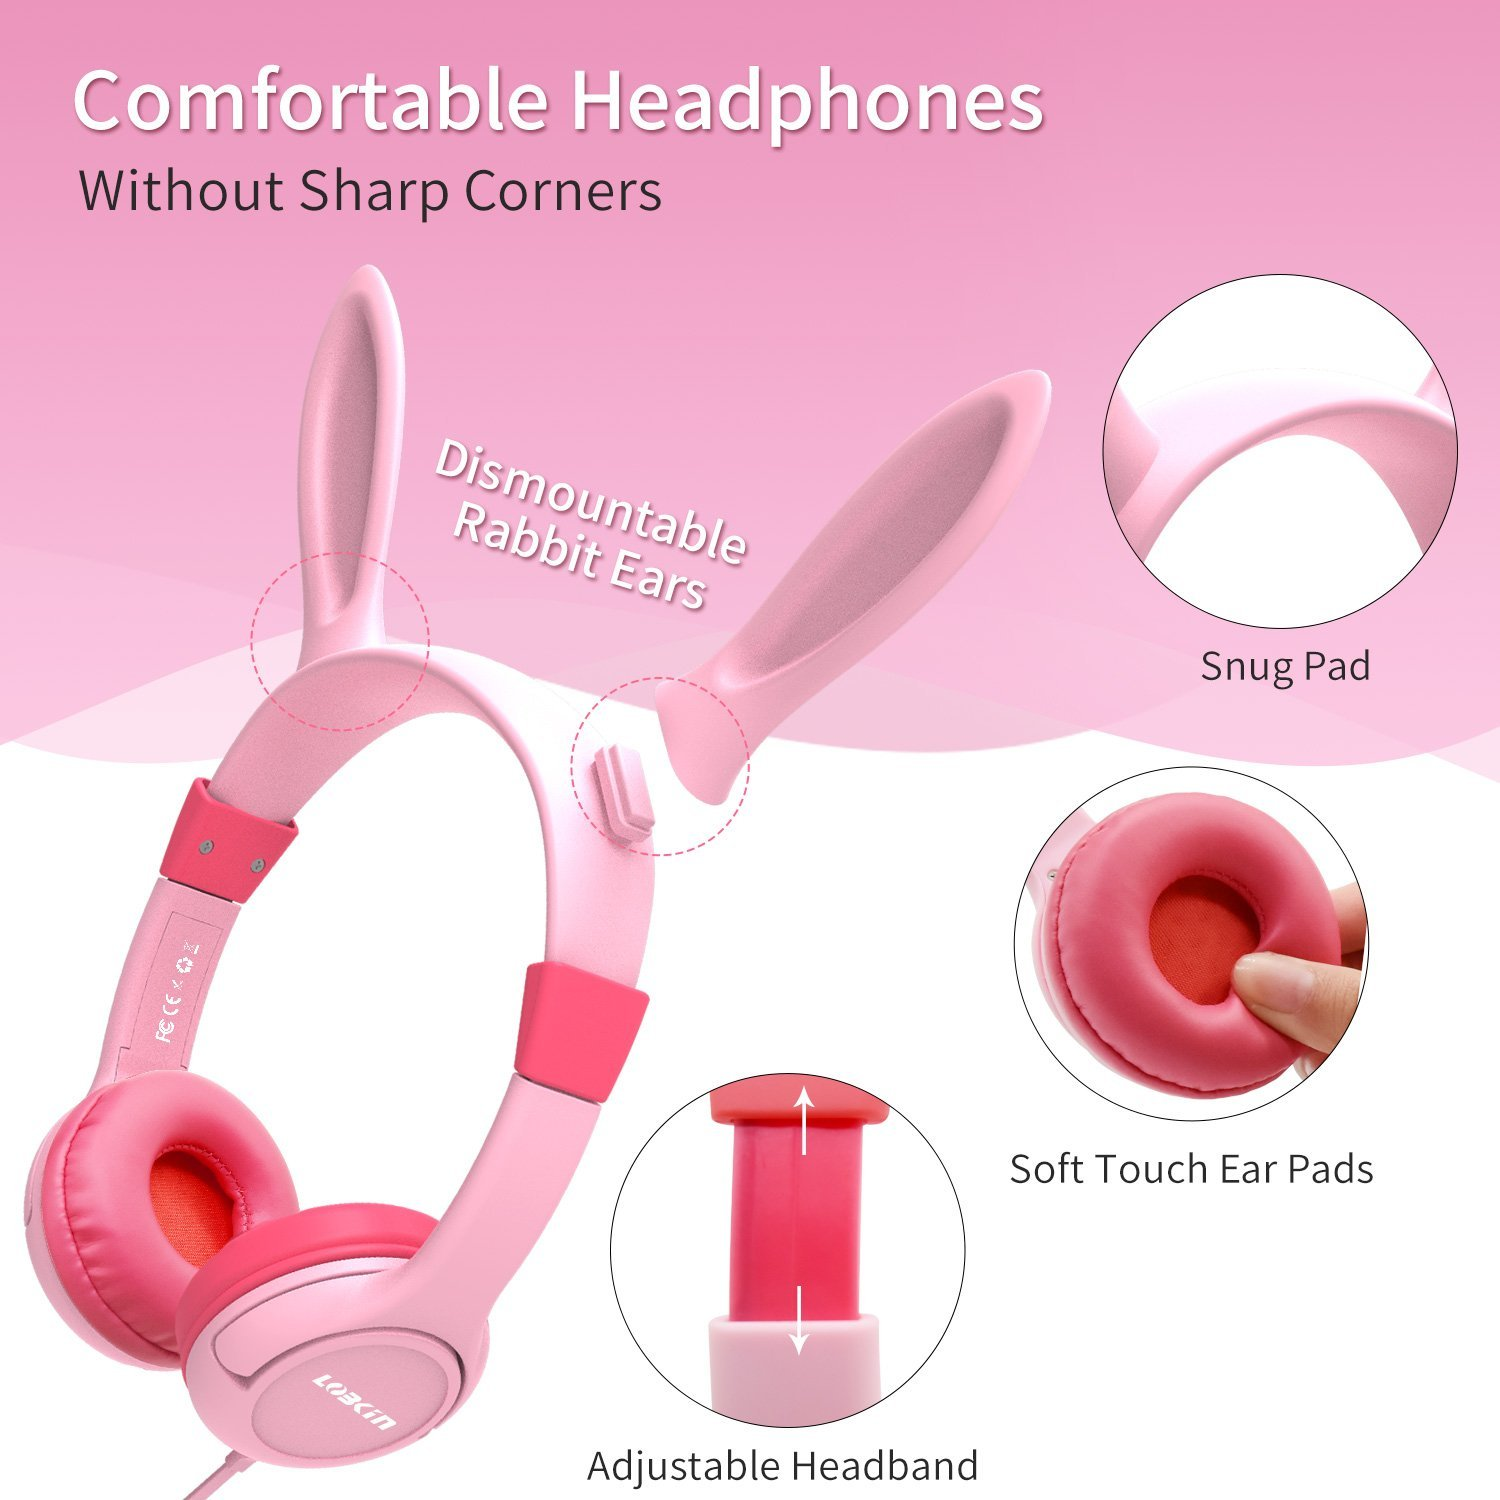 Kids Headphones, Lobkin Bunny Ear Wired On-Ear Earphones,Bluetooth Headsets Kids Friendly Safe Food Grade Material,Children Volume Limited Headphones -Pink